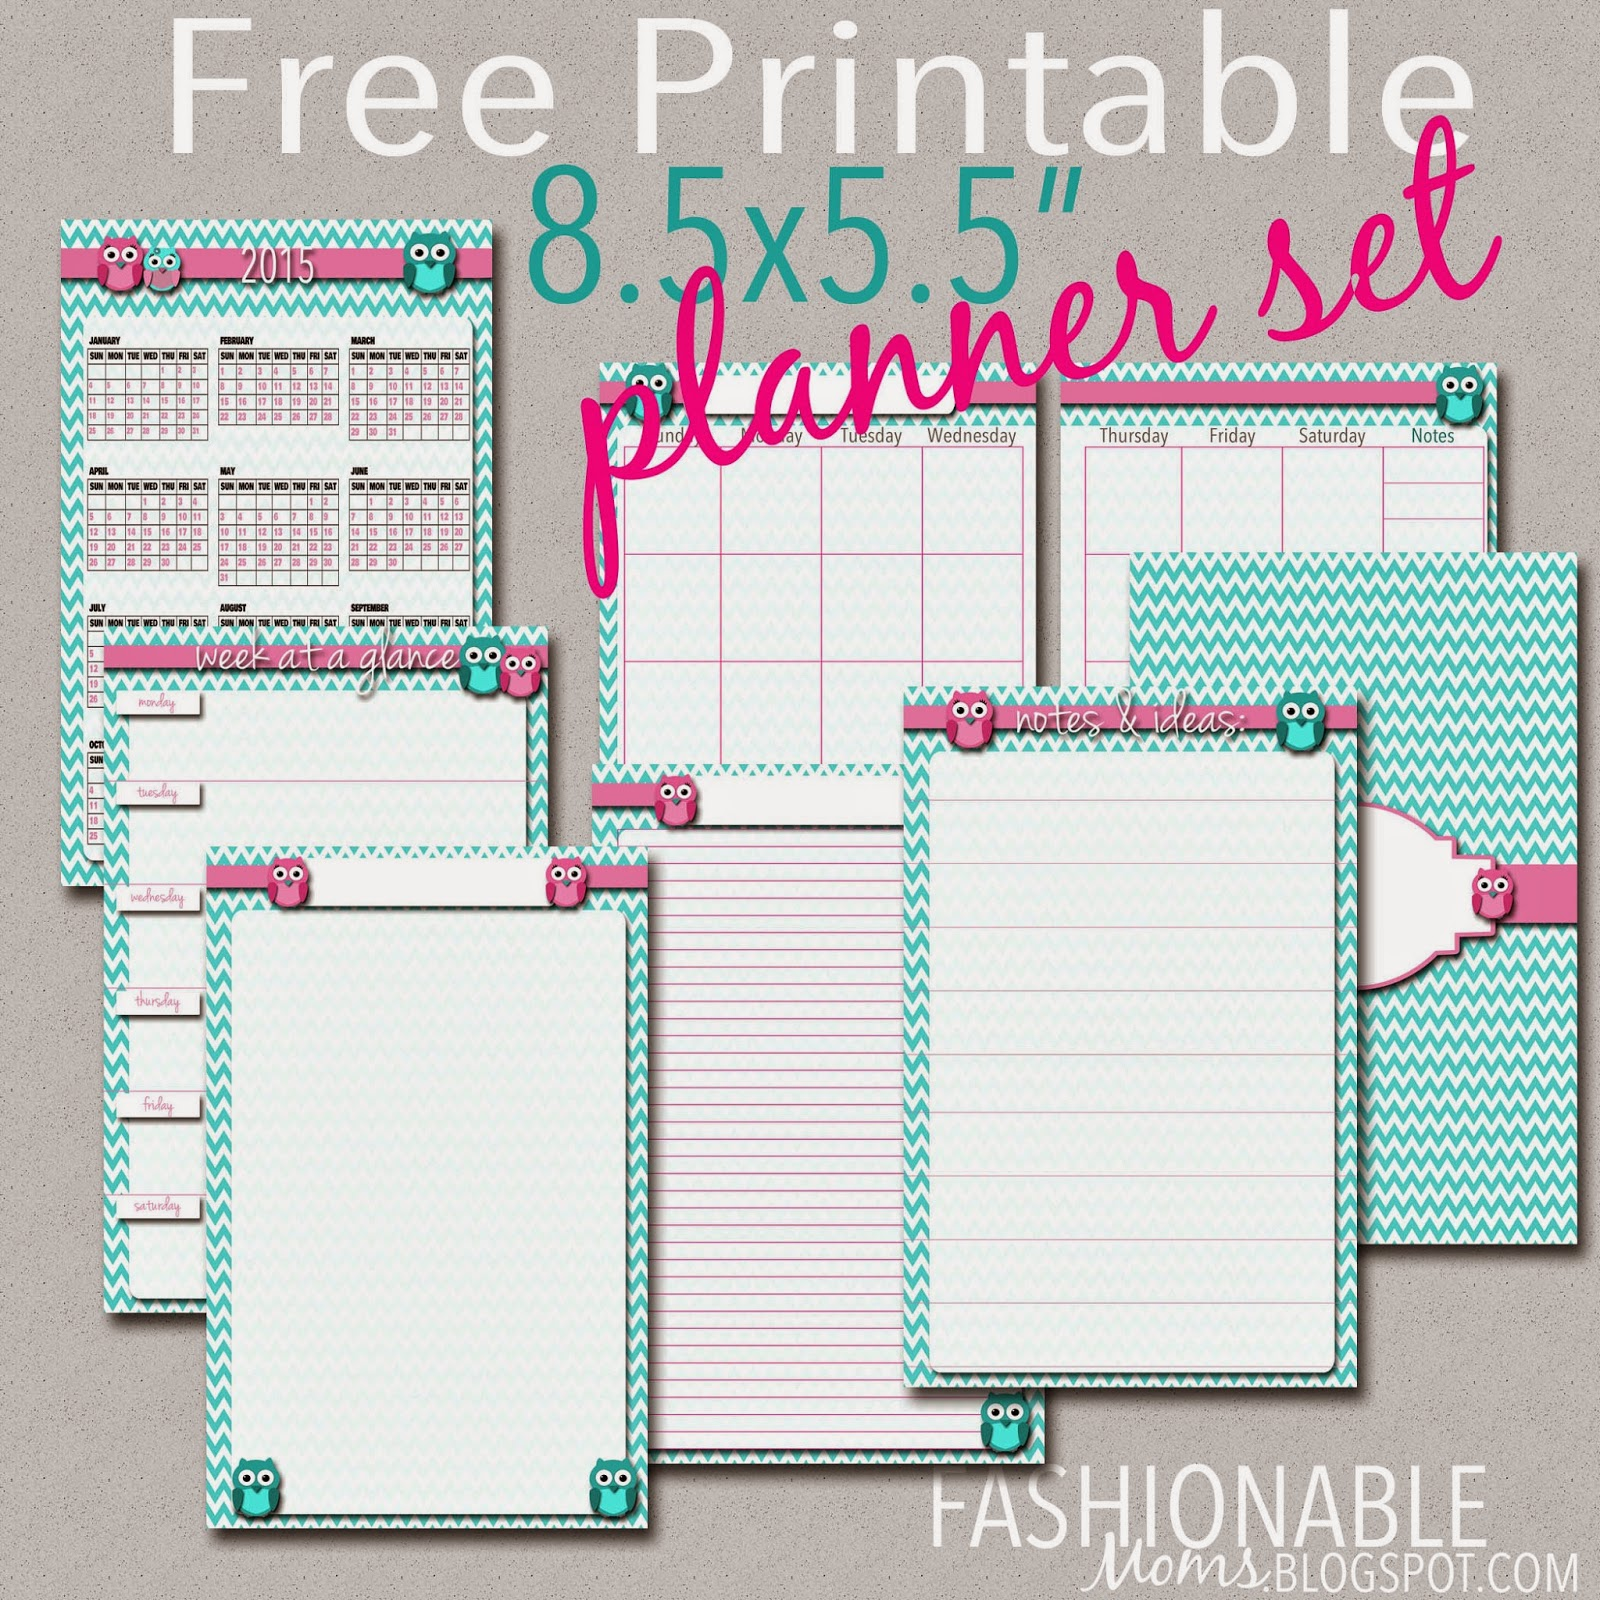 My Fashionable Designs: Free Printable Half Page Owl Planner Set